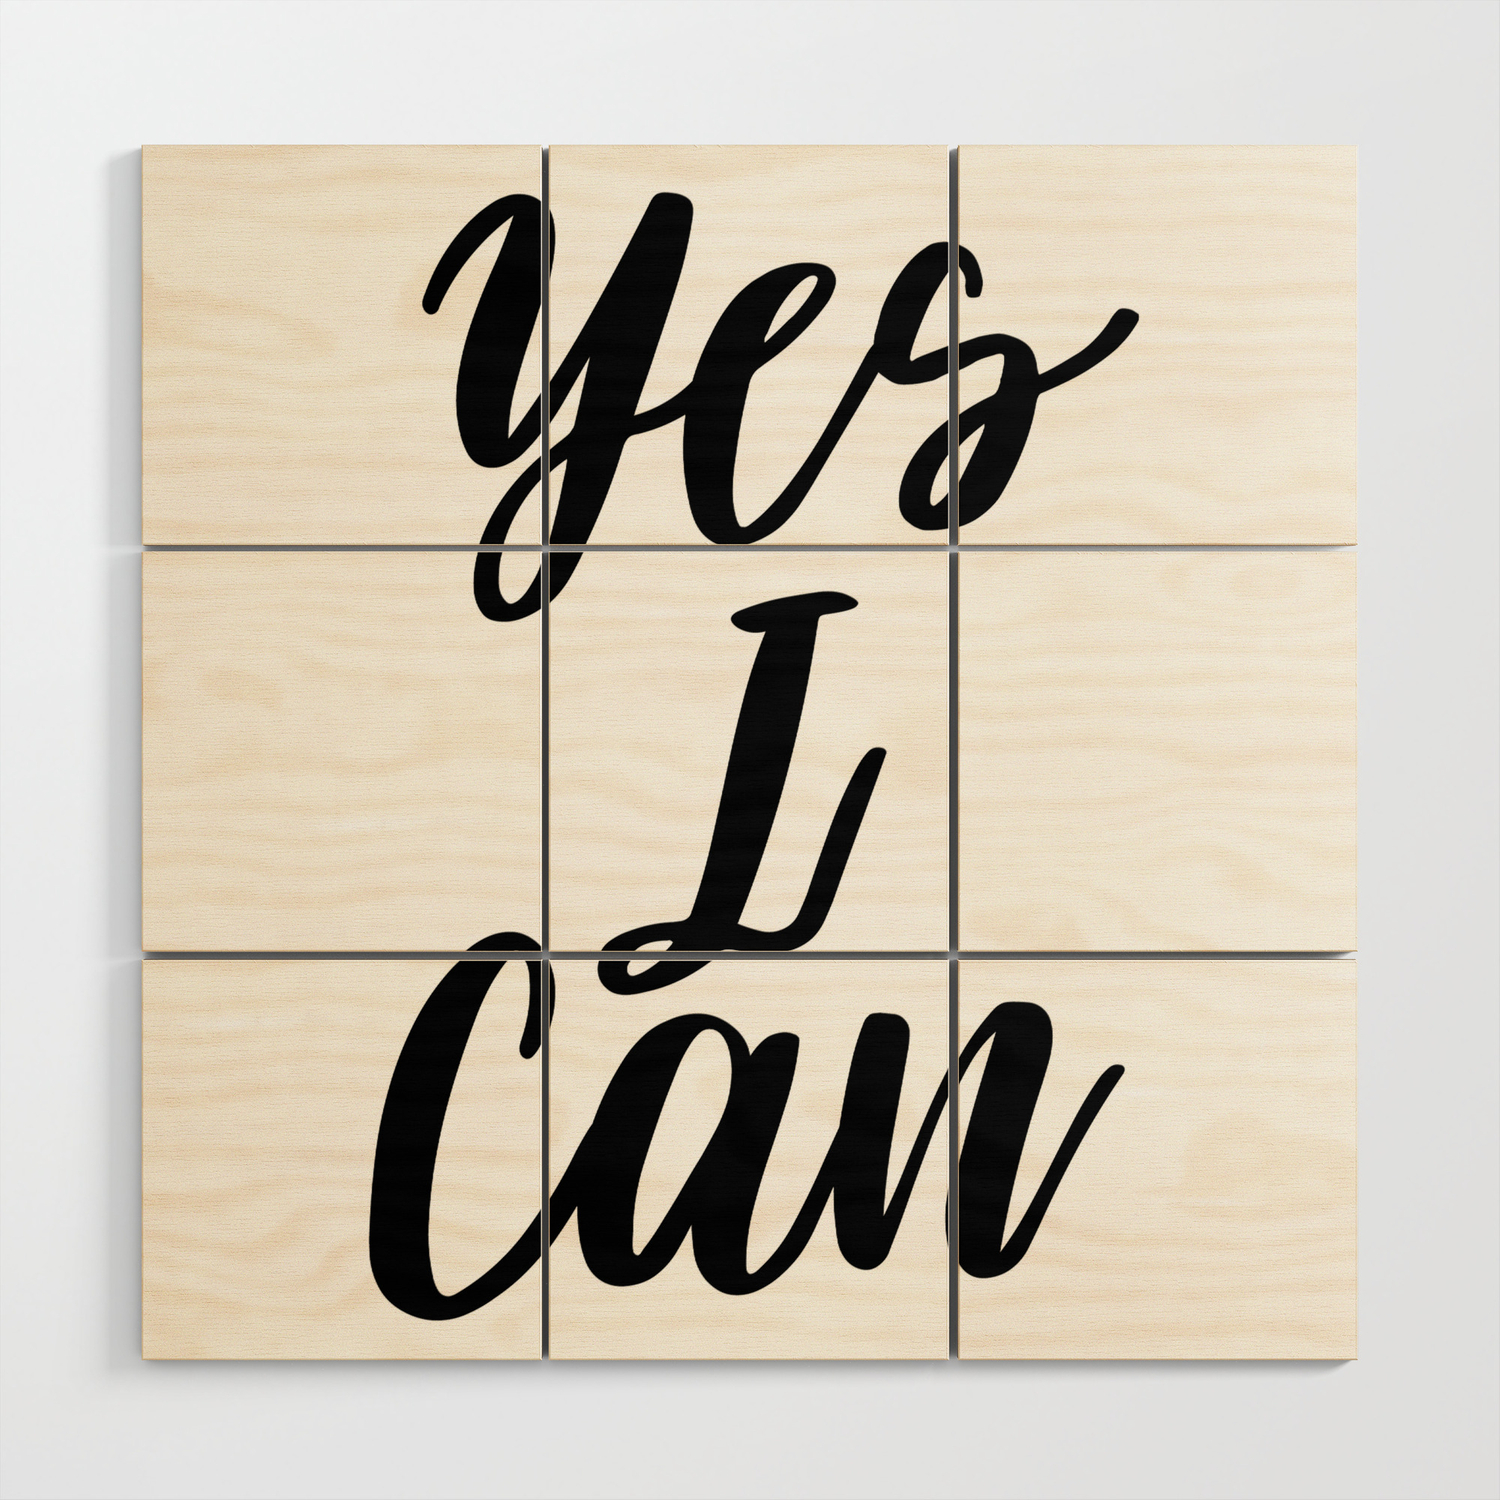 Yes I Can Inspirational Print Inspirational Quote Typography Design Motivational Art Inspiring Wood Wall Art By Artbynikola